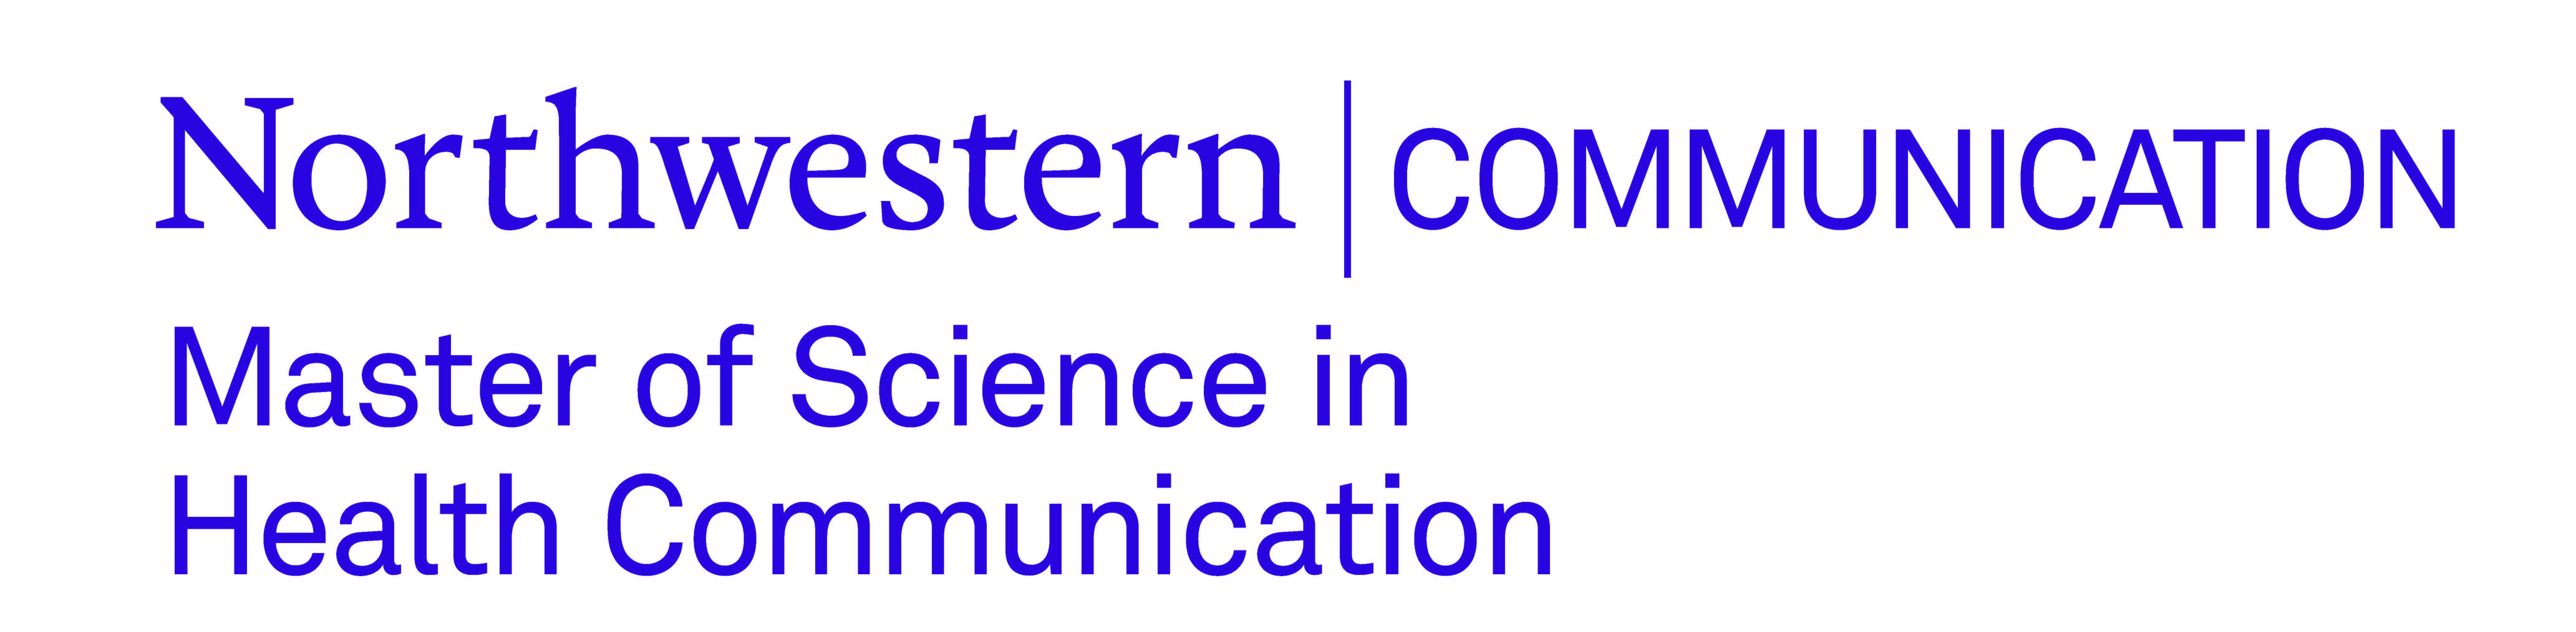 Thank you to our sponsor: Northwestern Master of Science in Health Communication program.